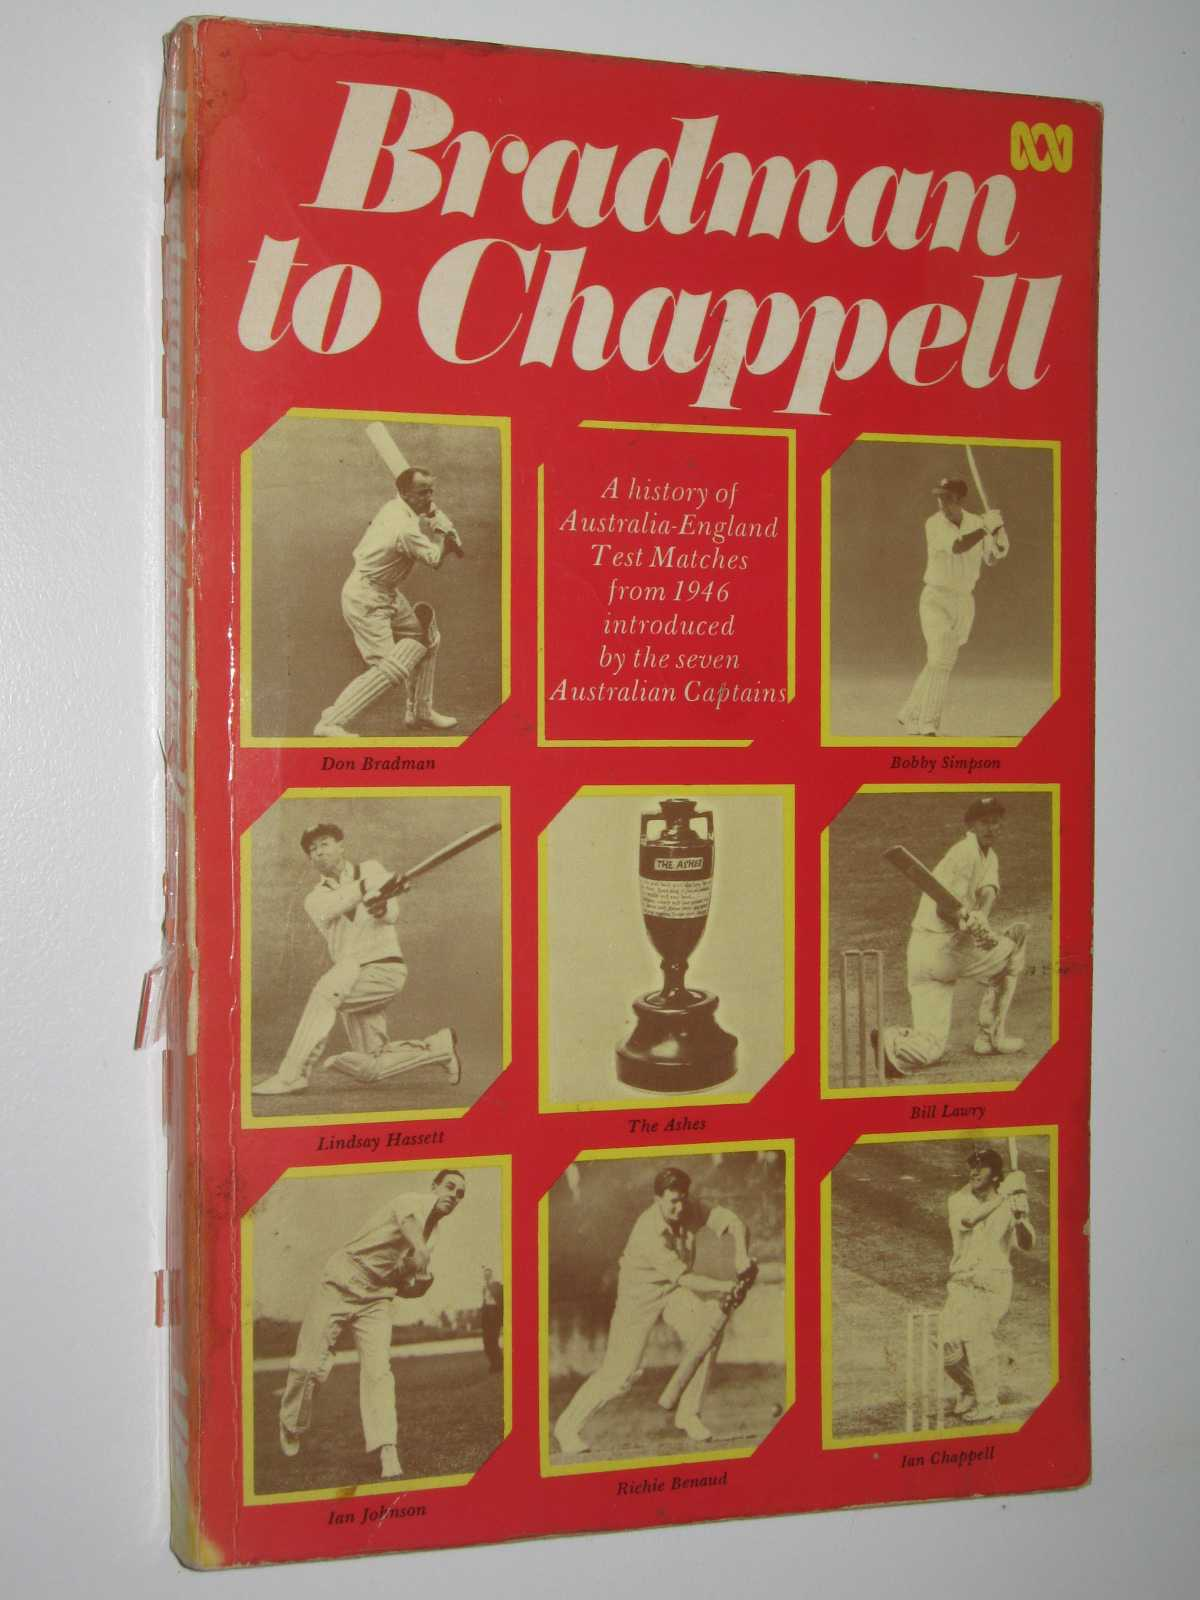 Bradman to Chappell : A History of Australia-England Test Matches from 1946, Author Not Stated